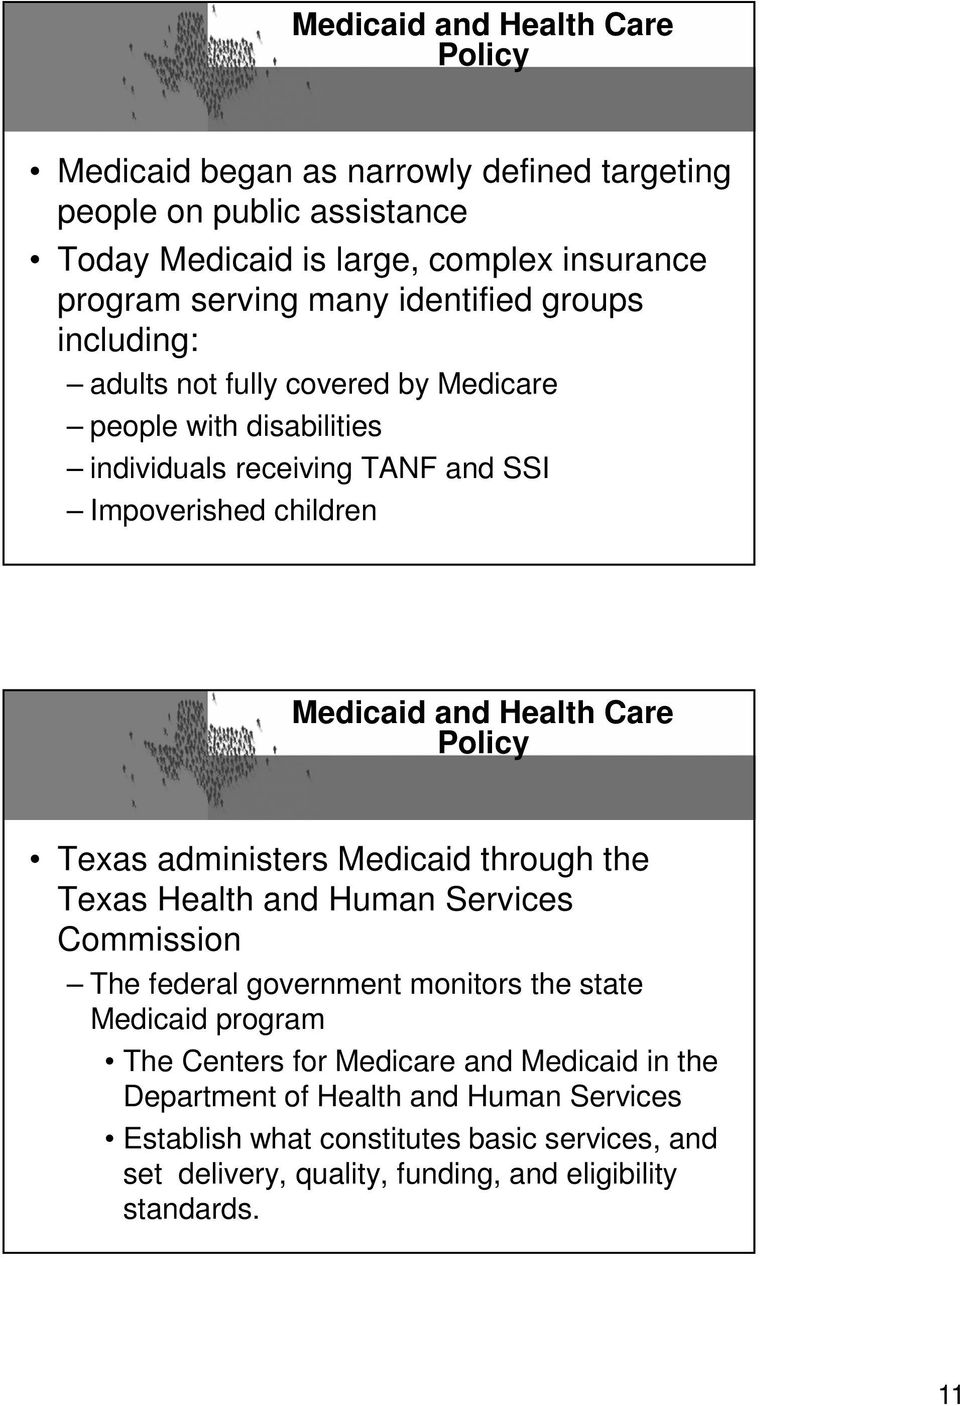 Care Policy Texas administers Medicaid through the Texas Health and Human Services Commission The federal government monitors the state Medicaid program The Centers for